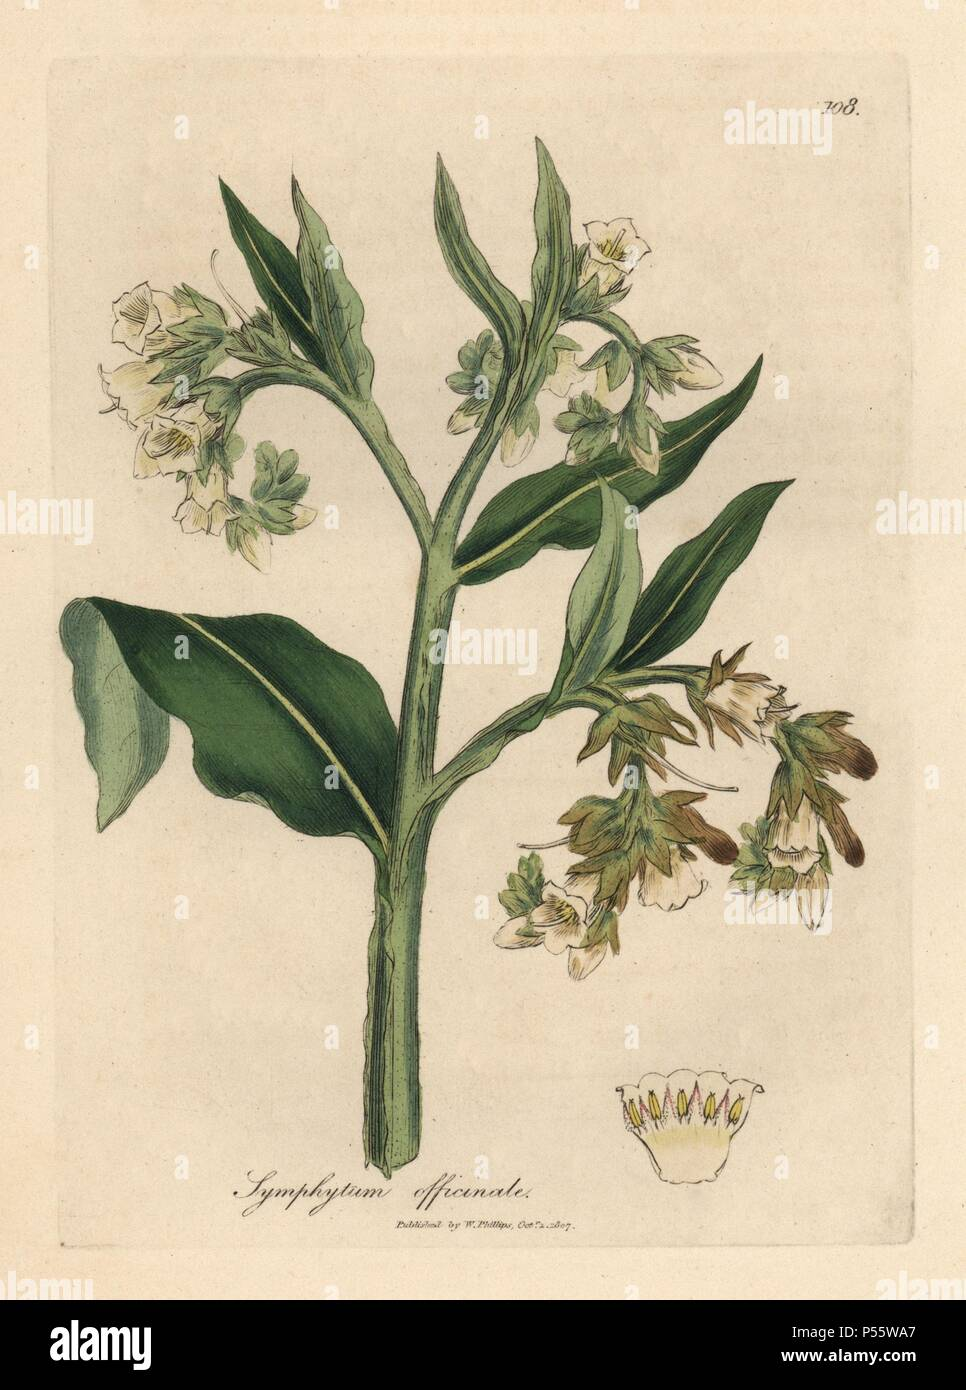 "Comfrey, Symphytum officinale. Handcoloured copperplate engraving from a botanical illustration by James Sowerby from William Woodville and Sir William Jackson Hooker's ""Medical Botany,"" John Bohn, London, 1832. The tireless Sowerby (1757-1822) drew over 2, 500 plants for Smith's mammoth ""English Botany"" (1790-1814) and 440 mushrooms for ""Coloured Figures of English Fungi "" (1797) among many other works. Stock Photo"